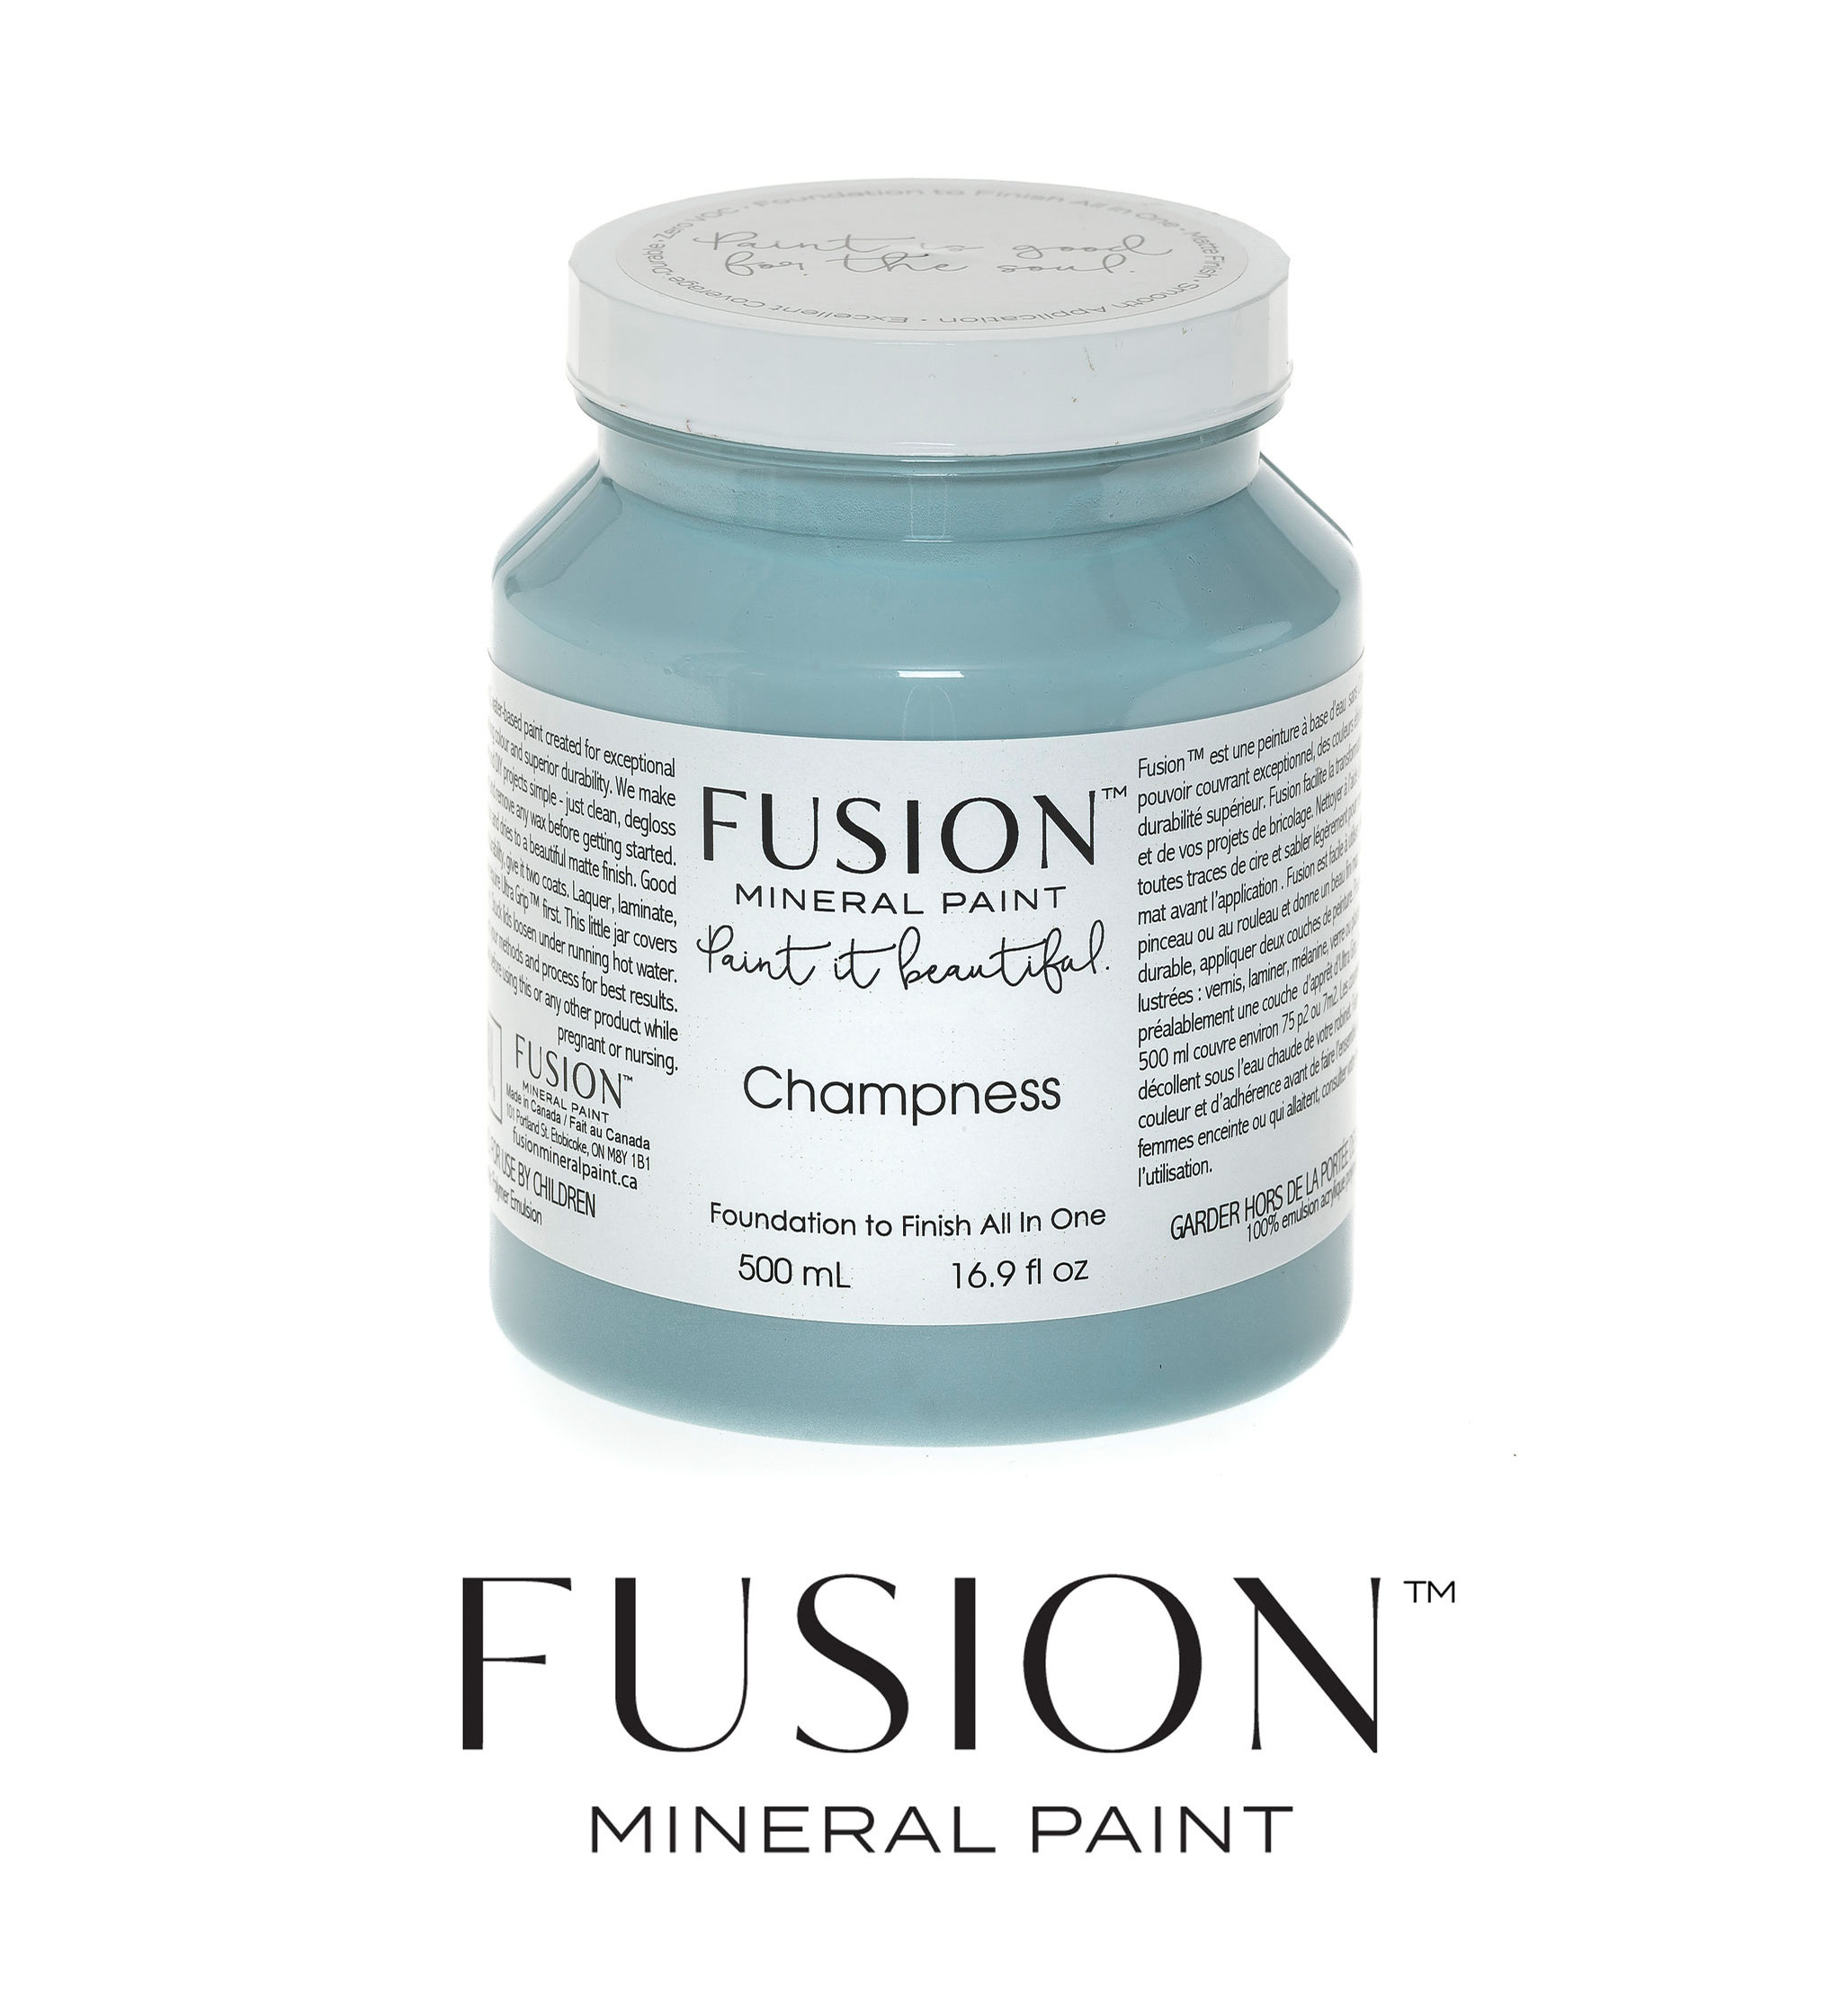 Fusion Mineral Paint - Champness (Pint)